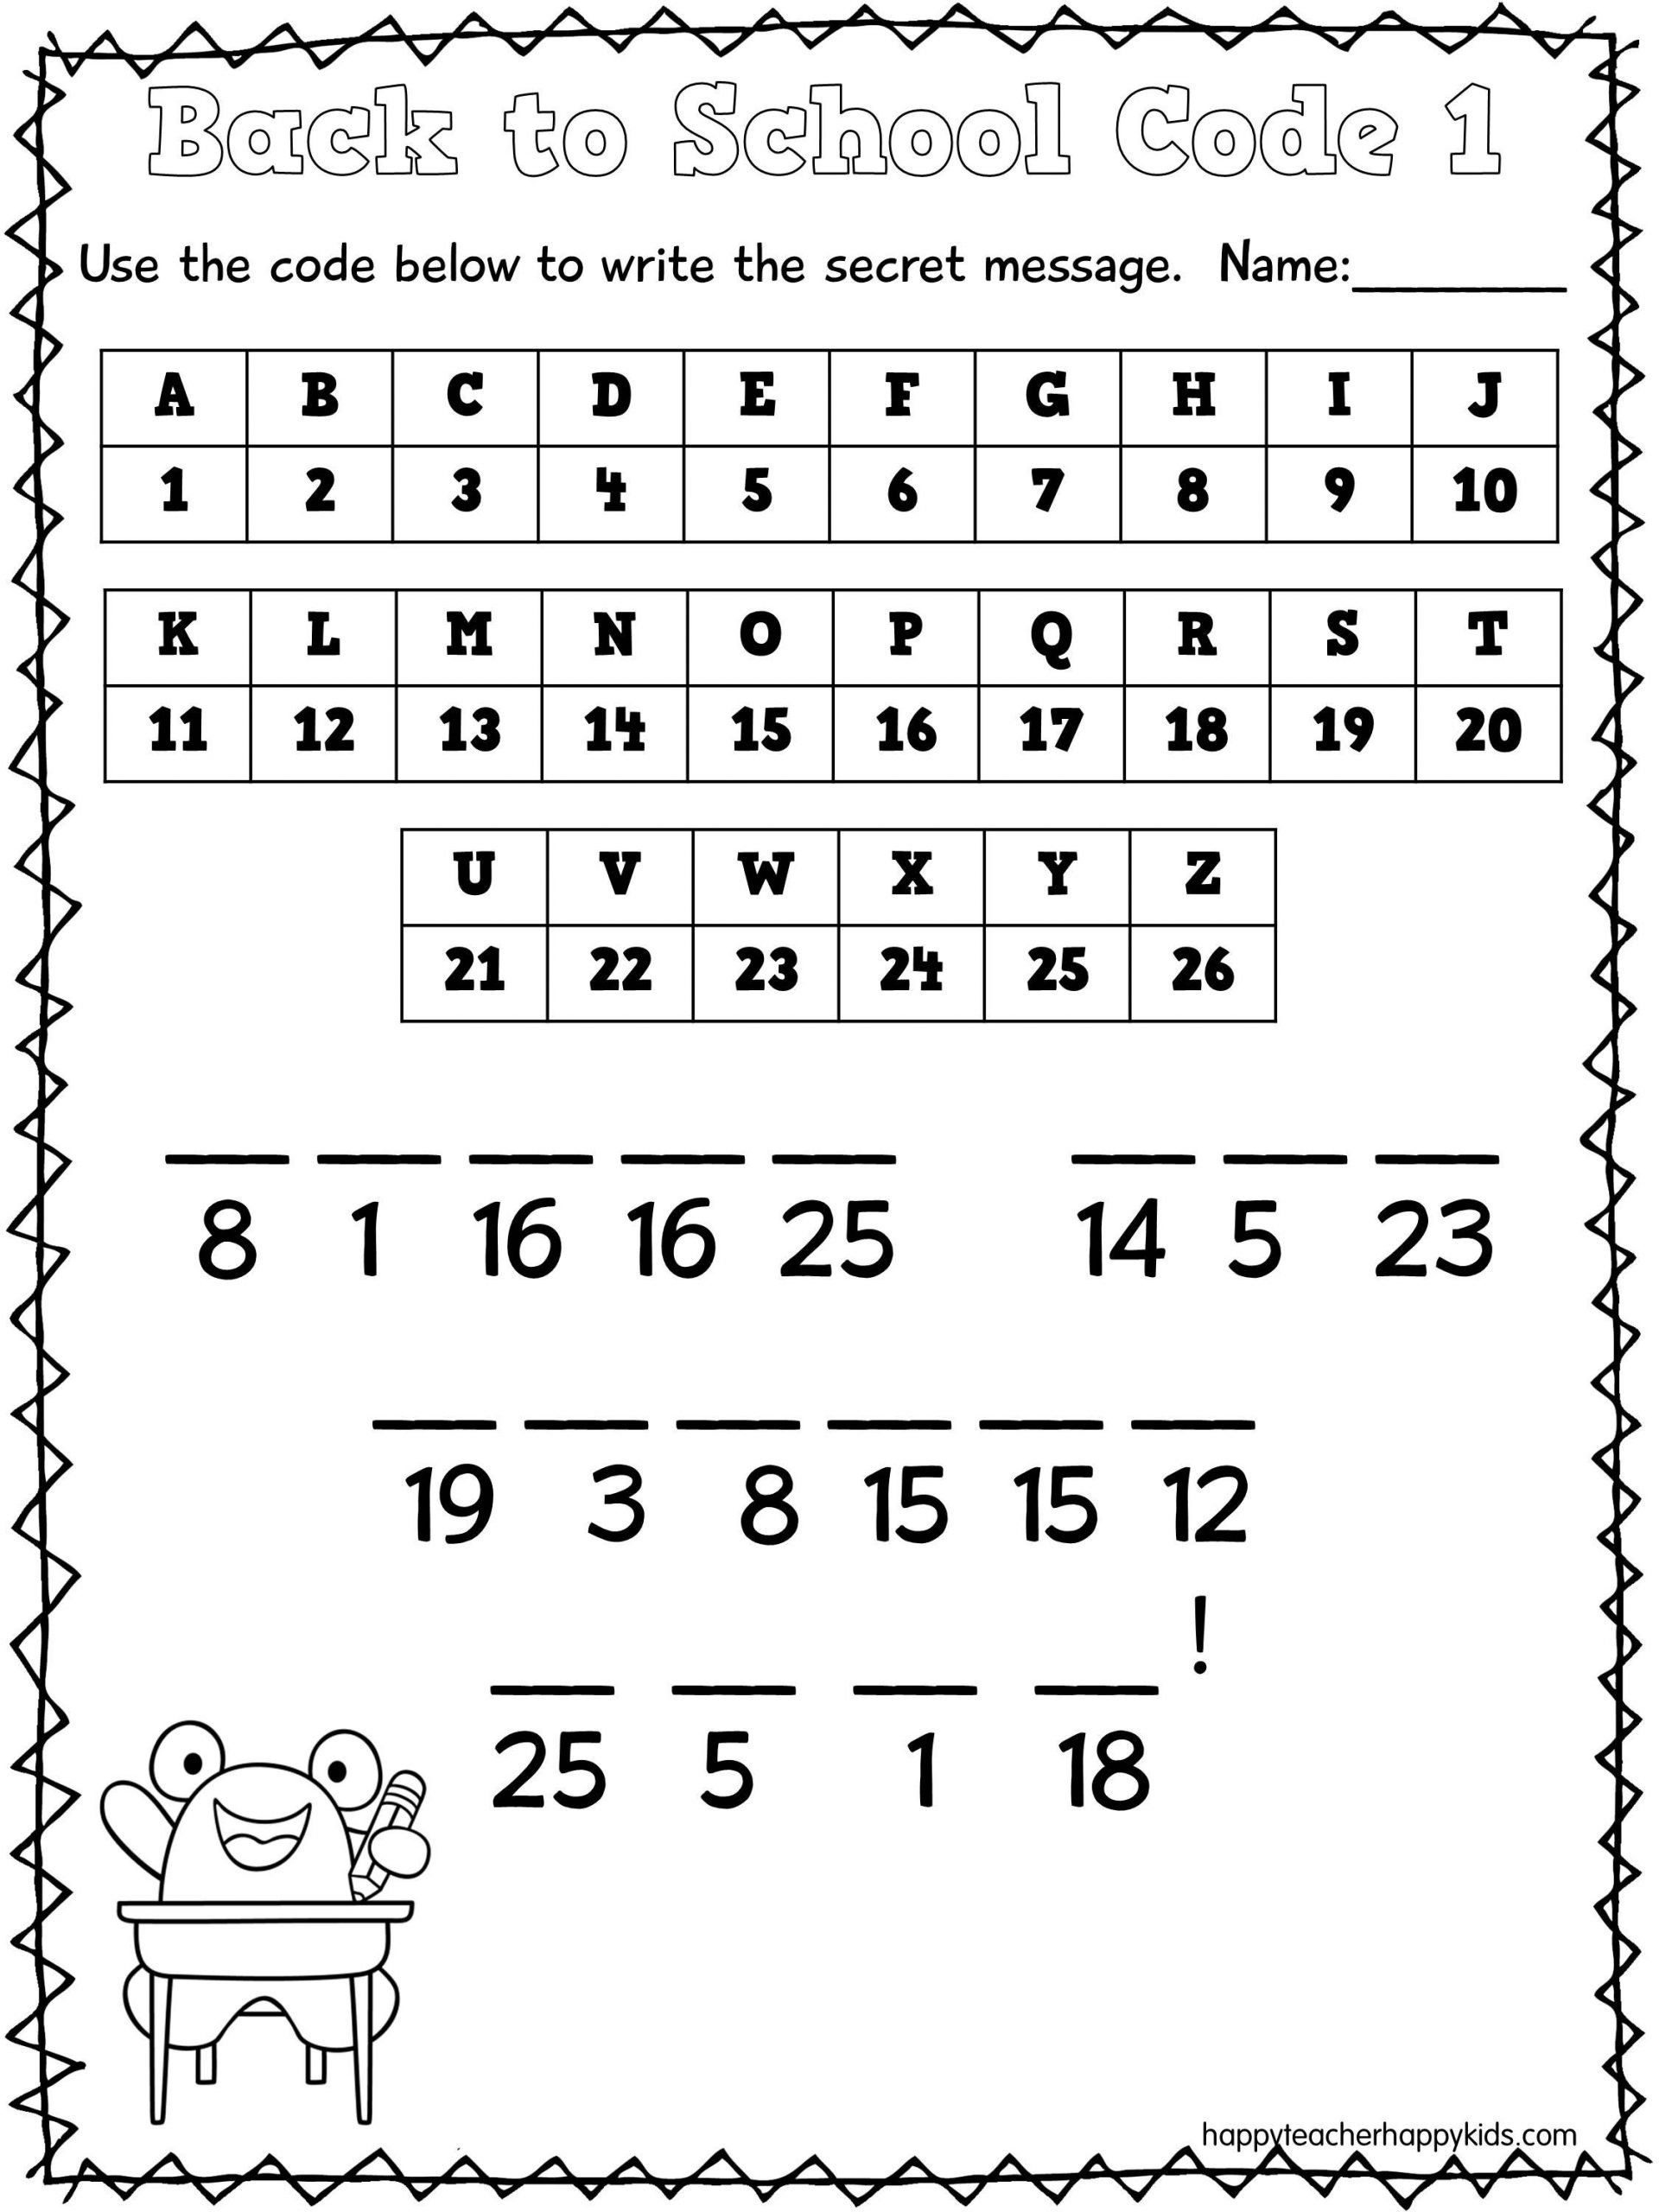 30 Math Secret Code Worksheets In